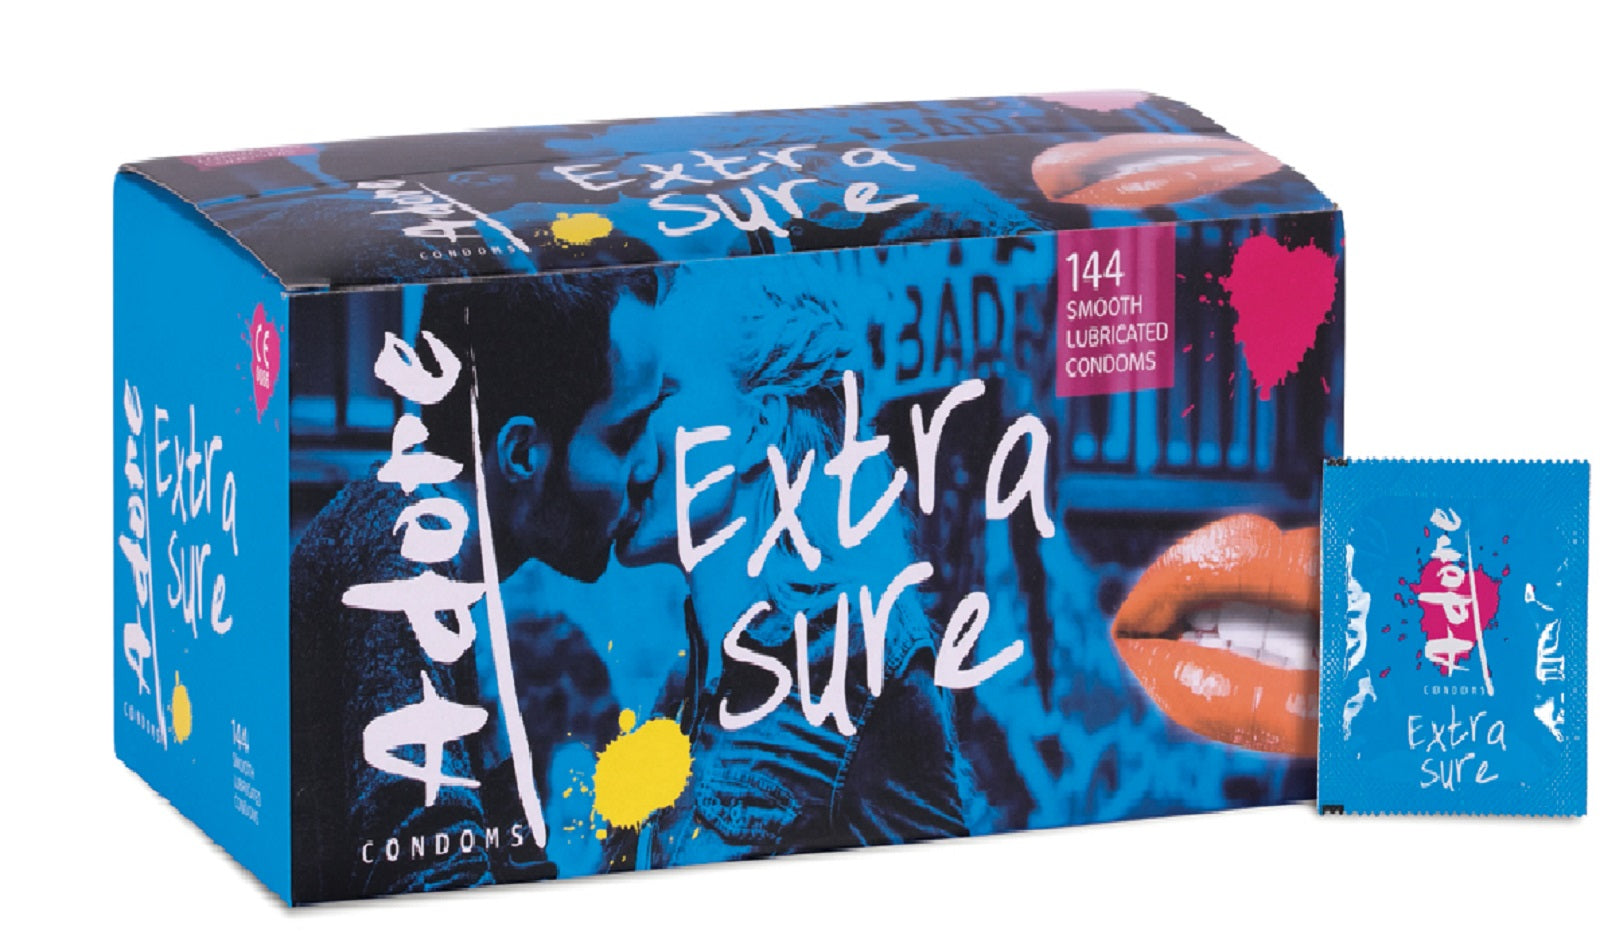 ADORE Extra Sure Safe Condoms 1-4-6-12-24-50-100-144pcs